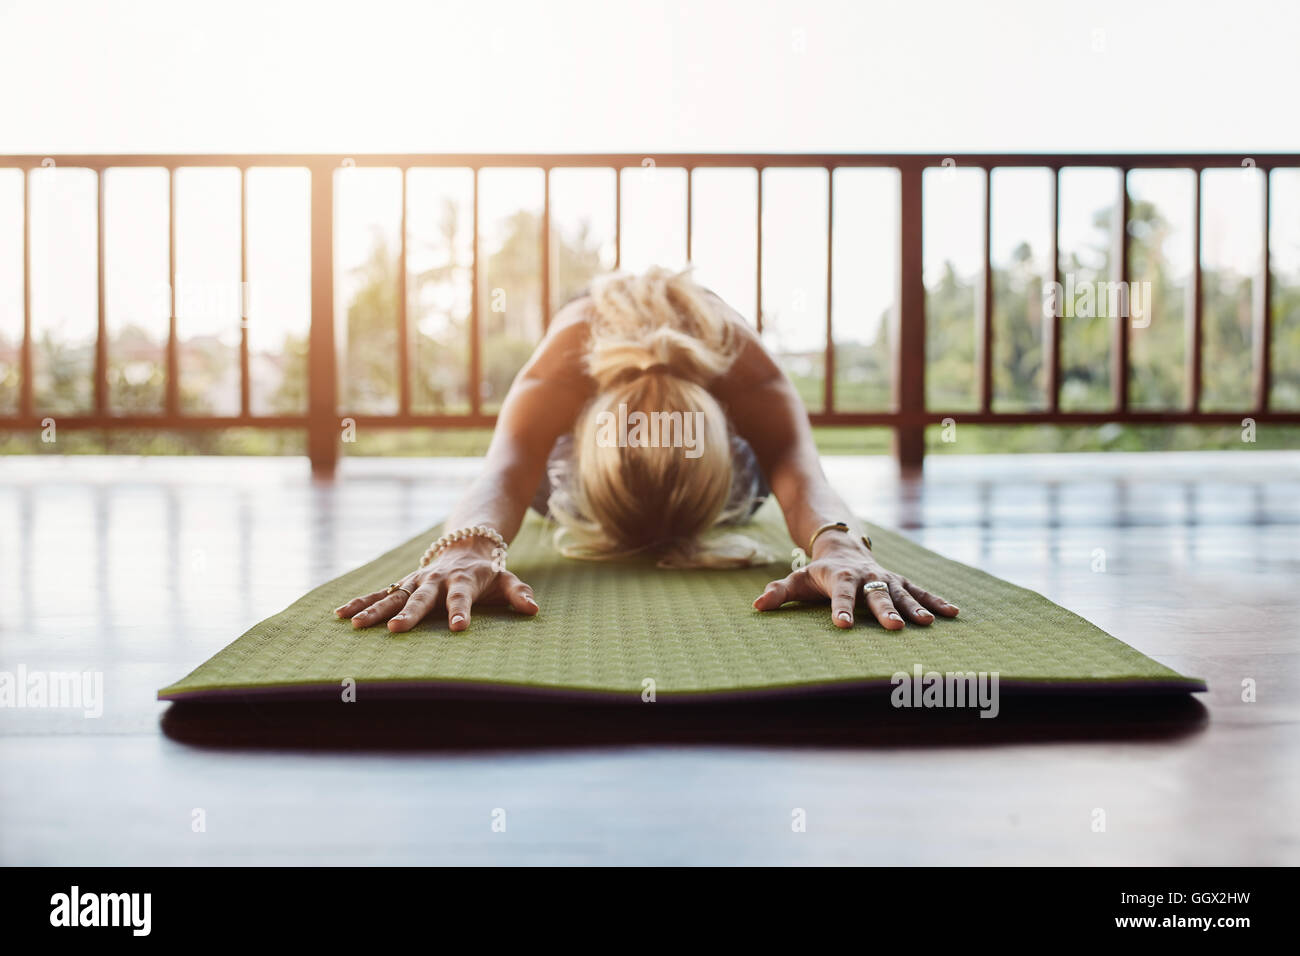 Woman doing stretching workout on fitness mat. Fitness female performing yoga on exercise mat at health club. - Stock Image